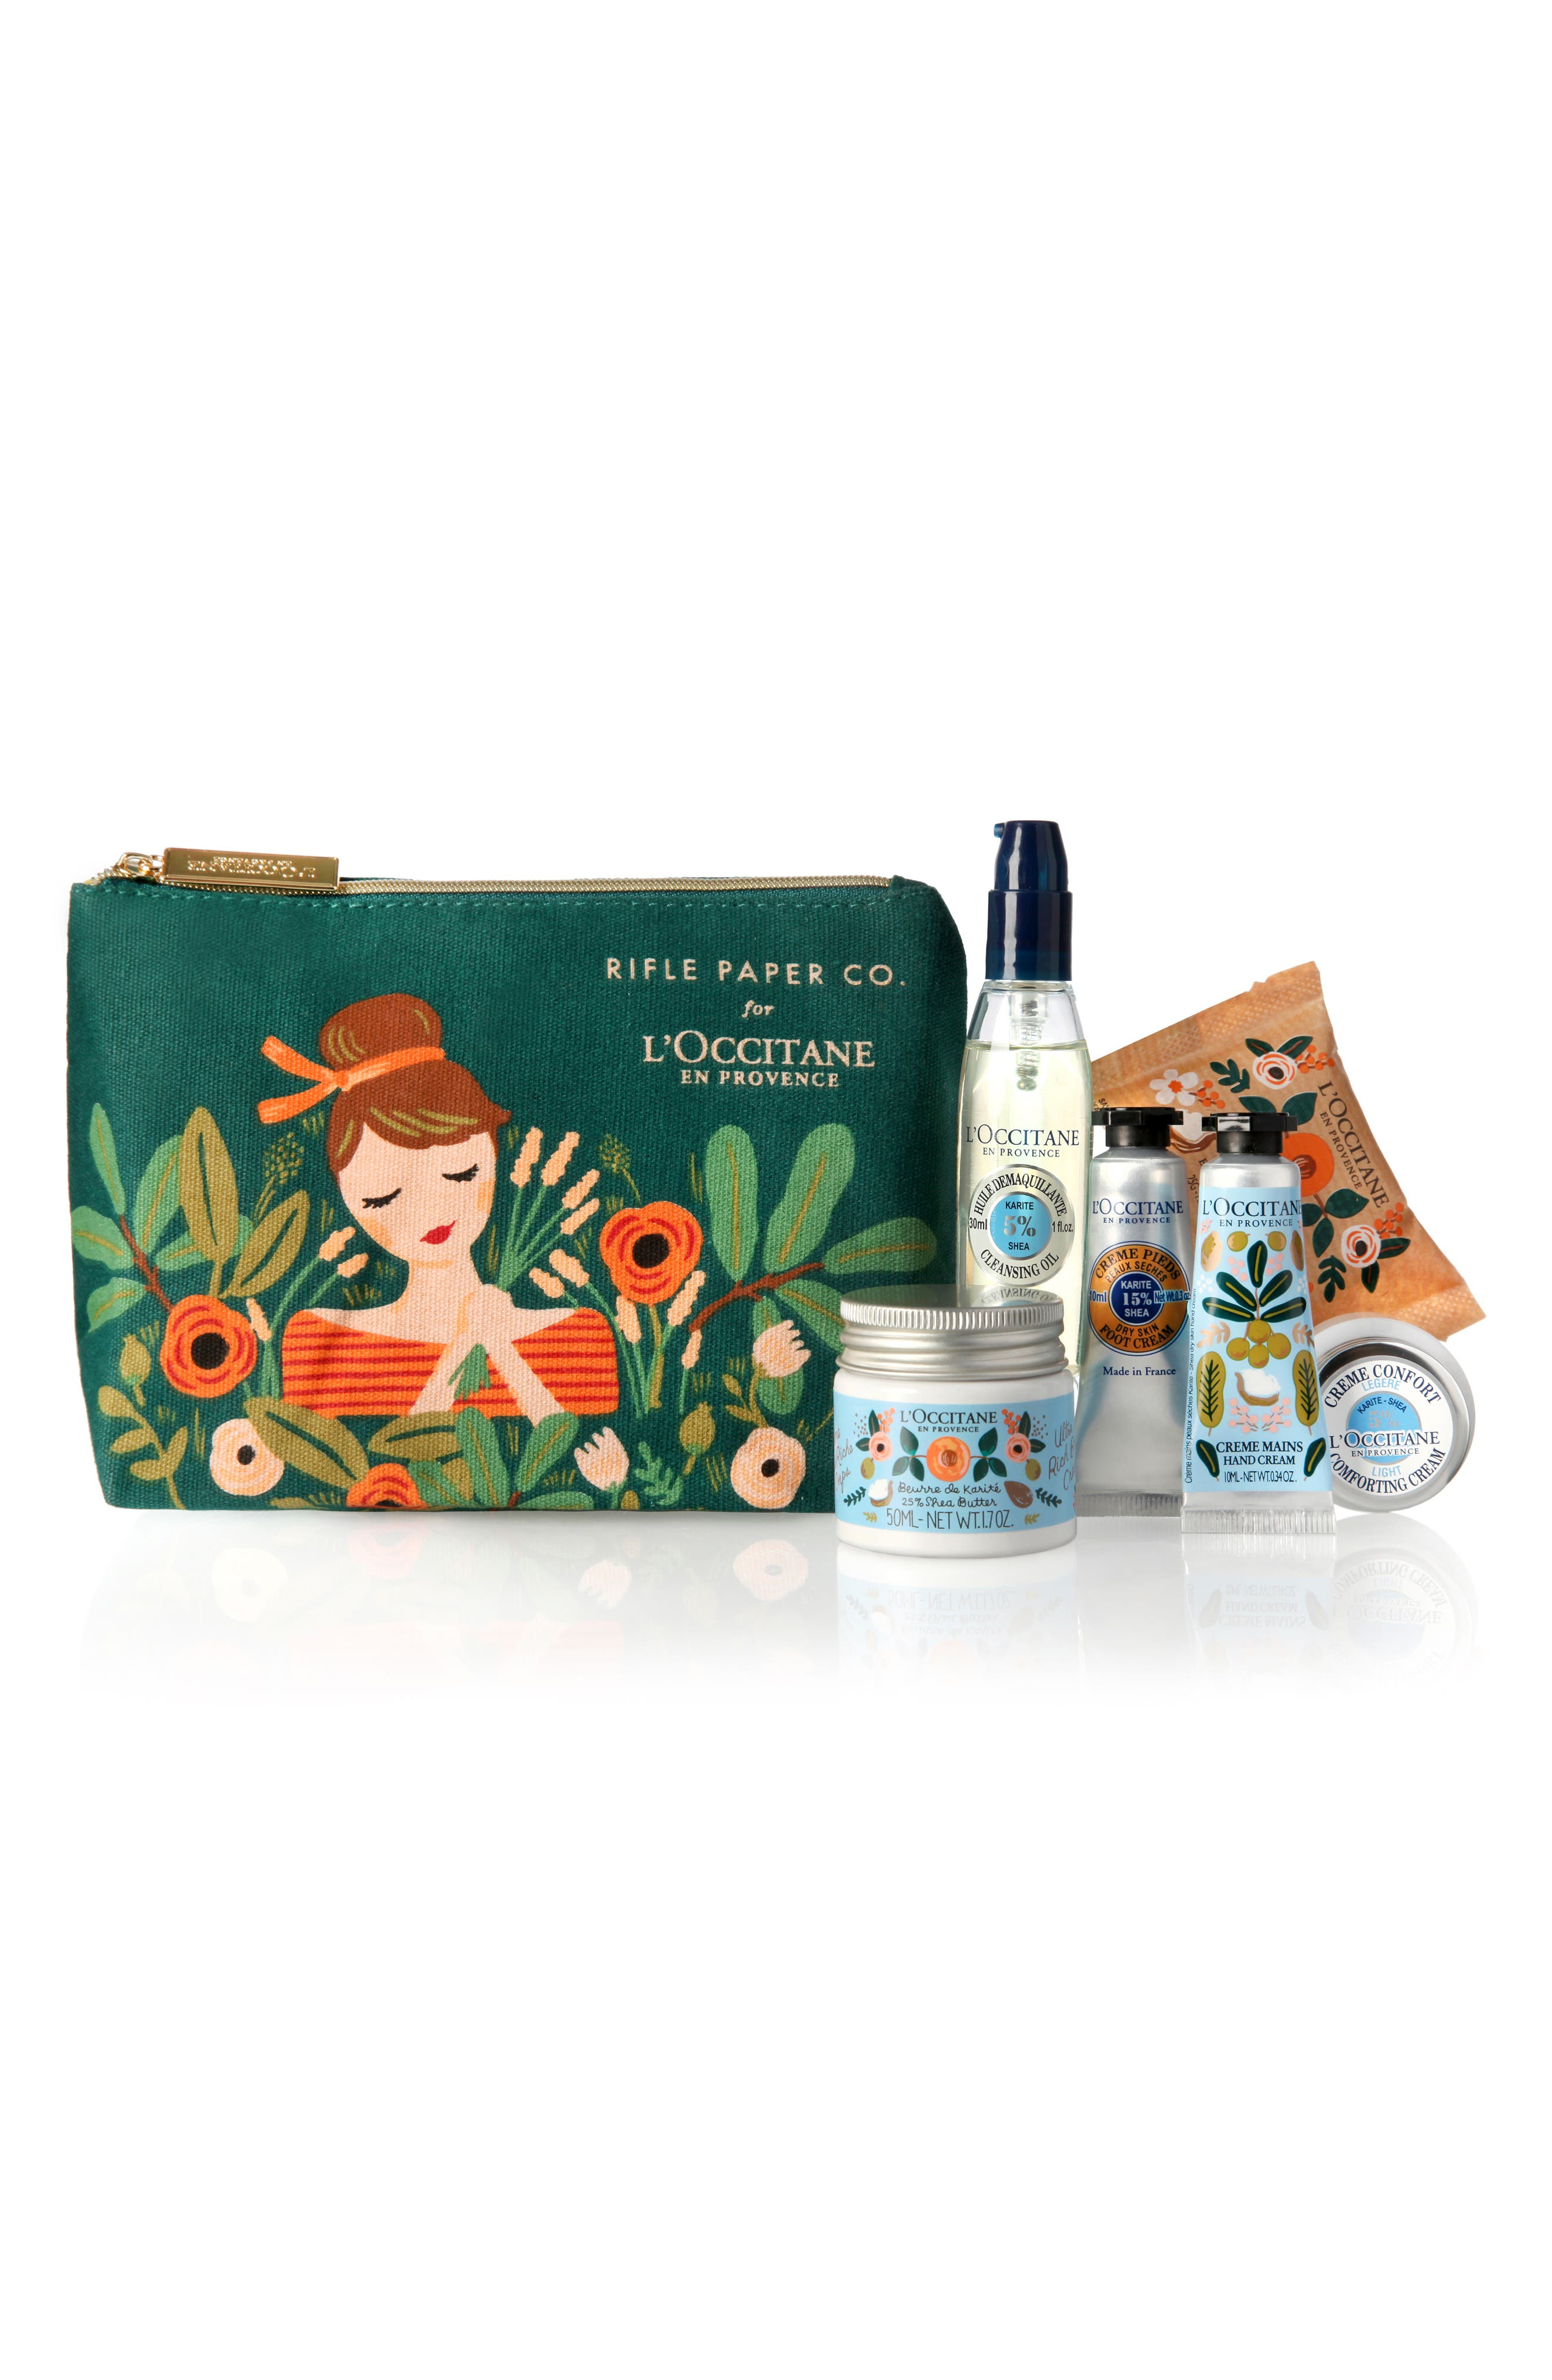 L'Occitane Rifle Paper Co. Shea Butter Kit ($40 Value)